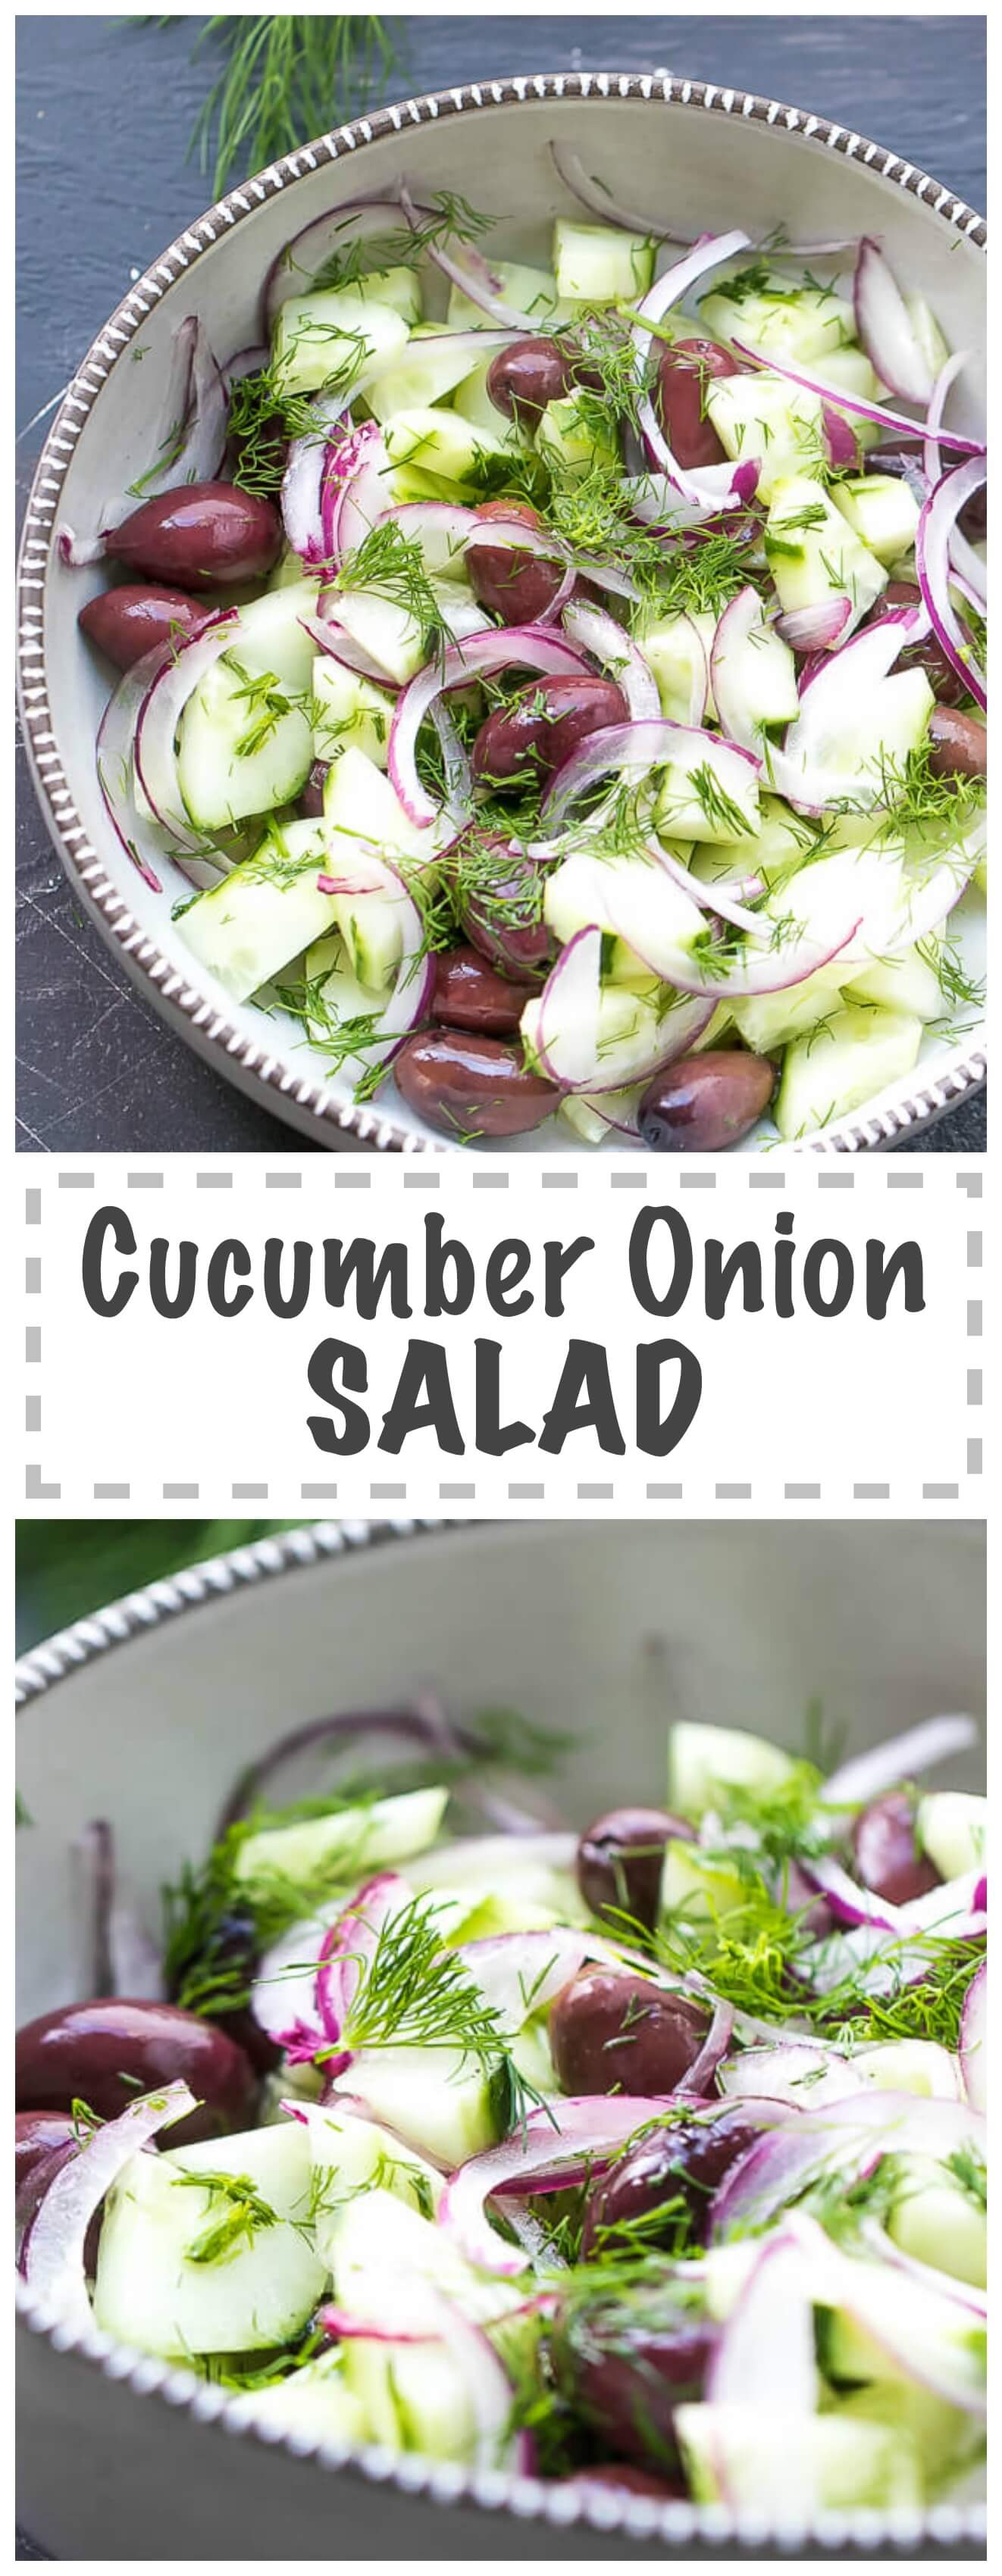 Cucumber And Onion Salad With Apple Cider Vinegar And Olives - crunchy, flavorful and easy to make, this salad is perfect for summer. Inspired by Mediterranean cuisine, this salad is popular in my home country - Bulgaria.